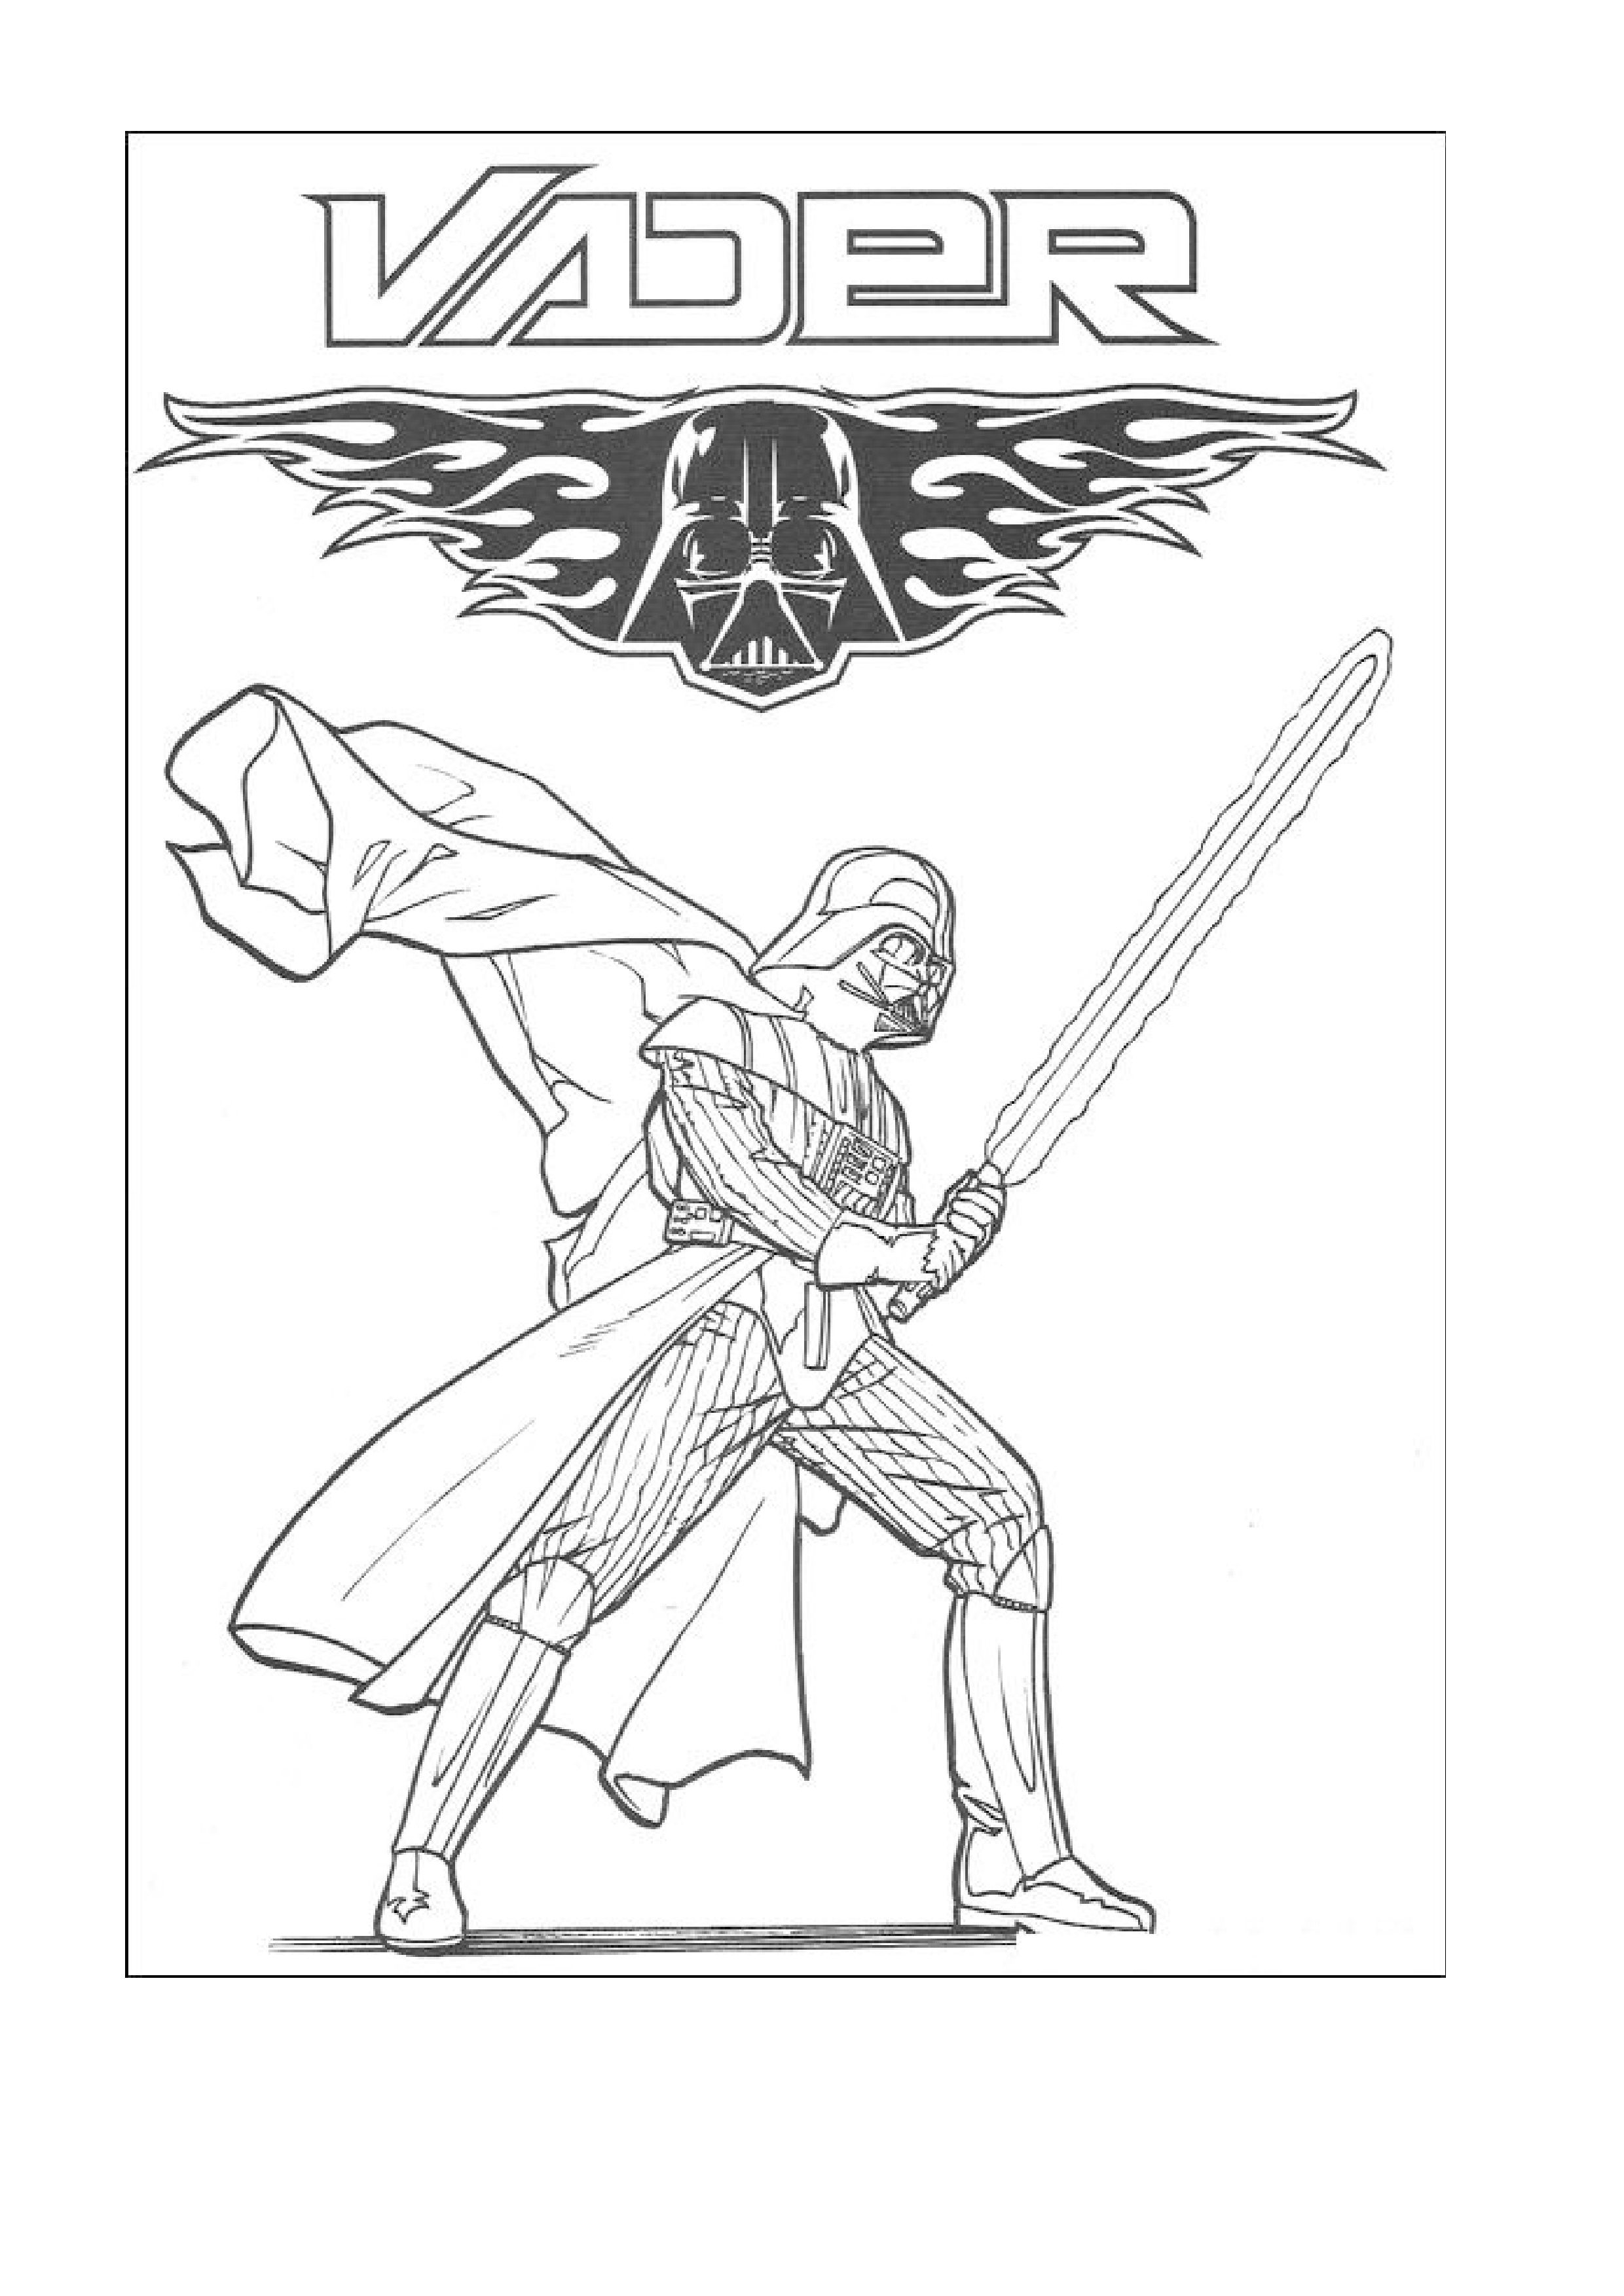 darth vader coloring page - Boba Fett Coloring Pages Printable